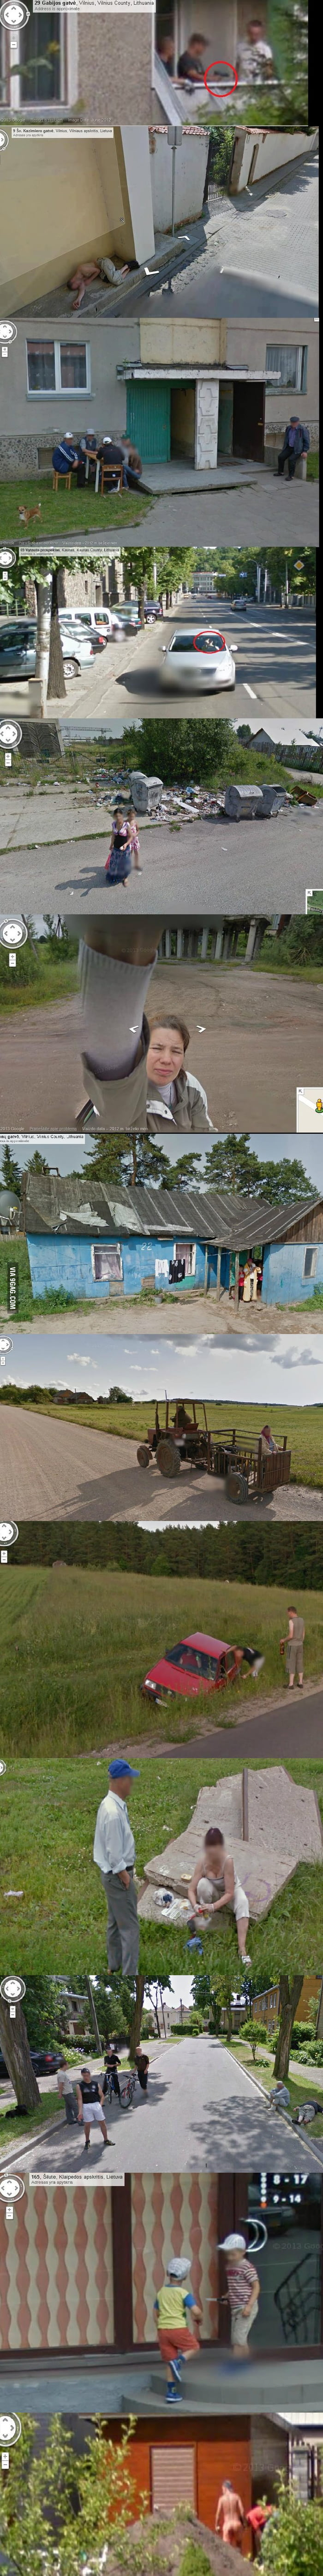 So, Google Steet View has finally came to Lithuania